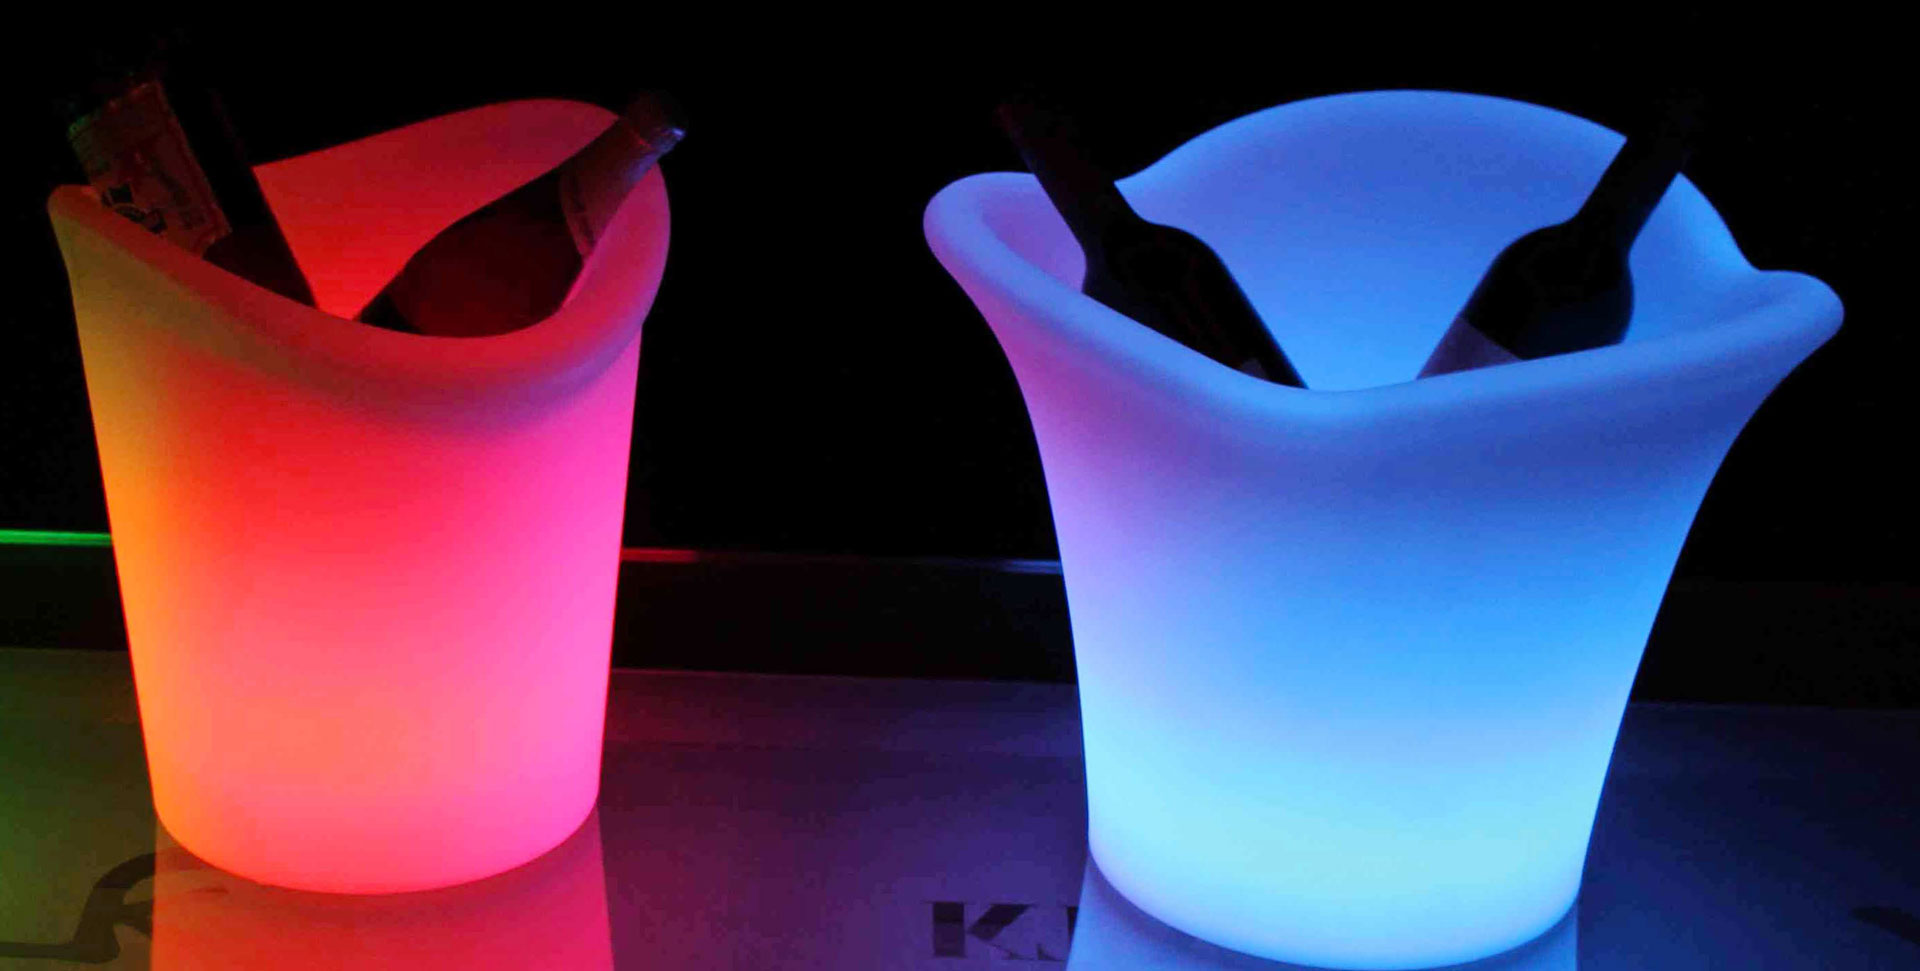 illuminate-your-event-with-led-furniture-table-led-accessories-hire